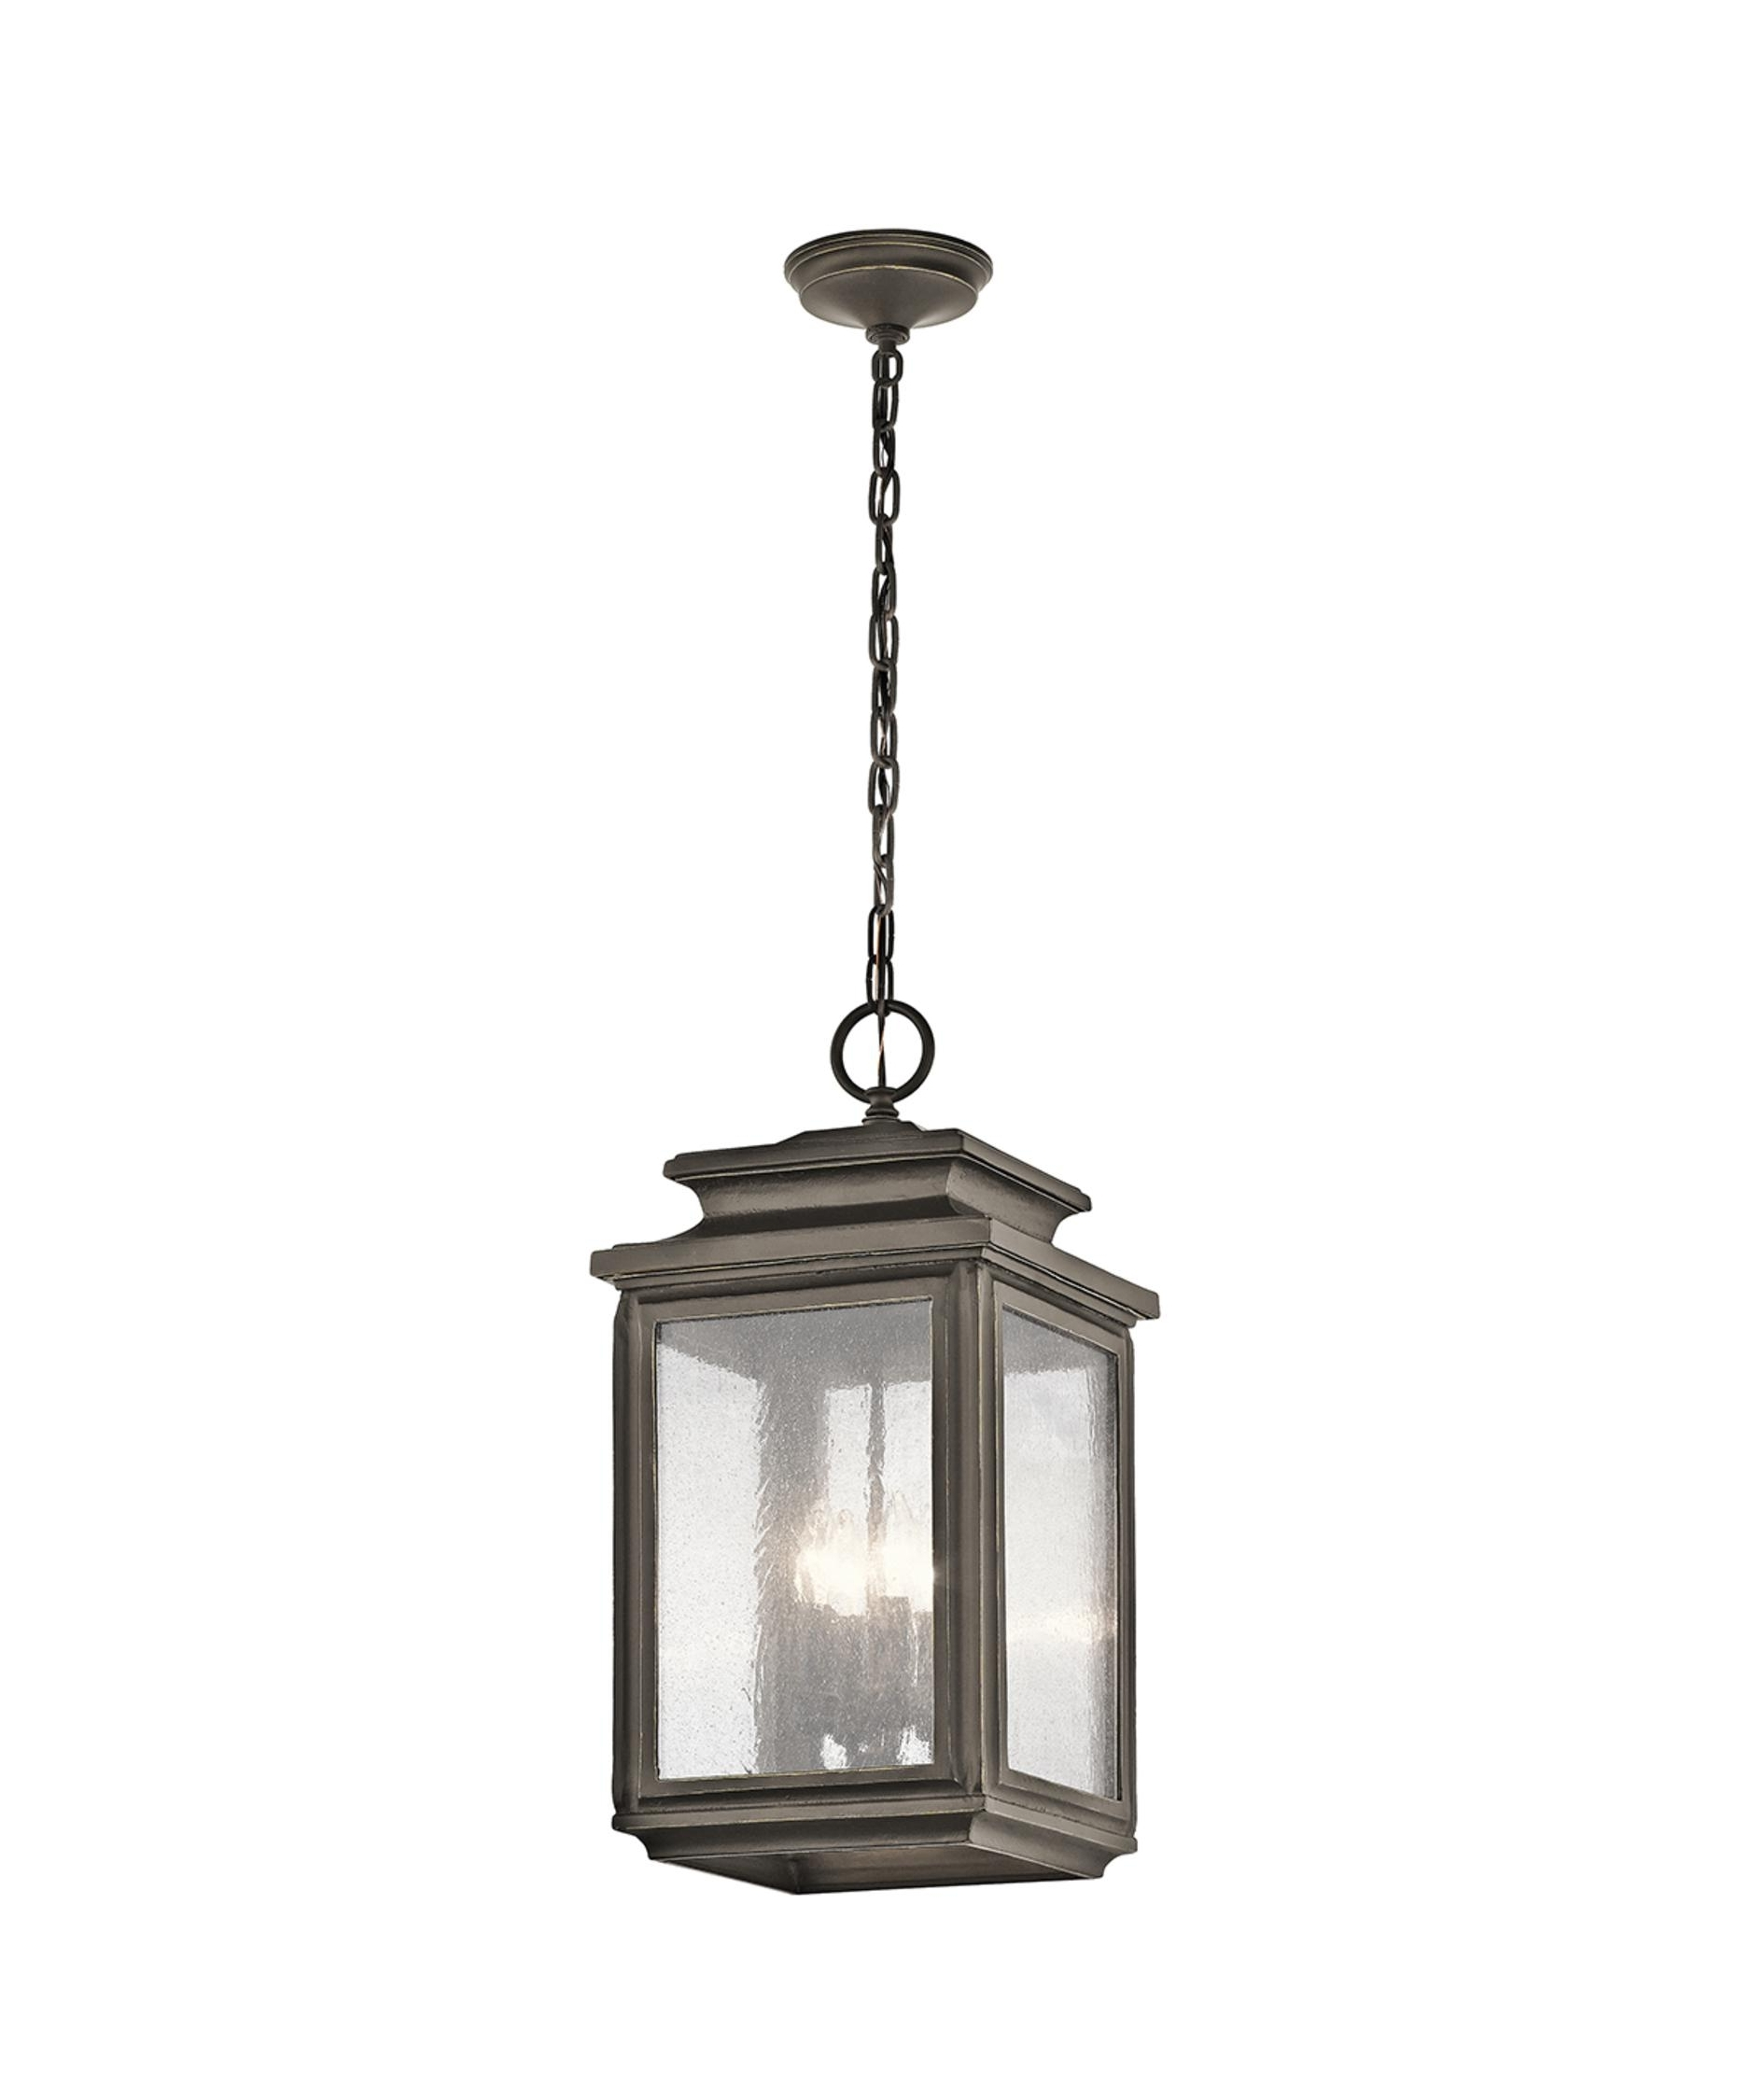 Well Liked Kichler 49505 Wiscombe Park 11 Inch Wide 4 Light Outdoor Hanging Regarding Italian Outdoor Lanterns (View 20 of 20)